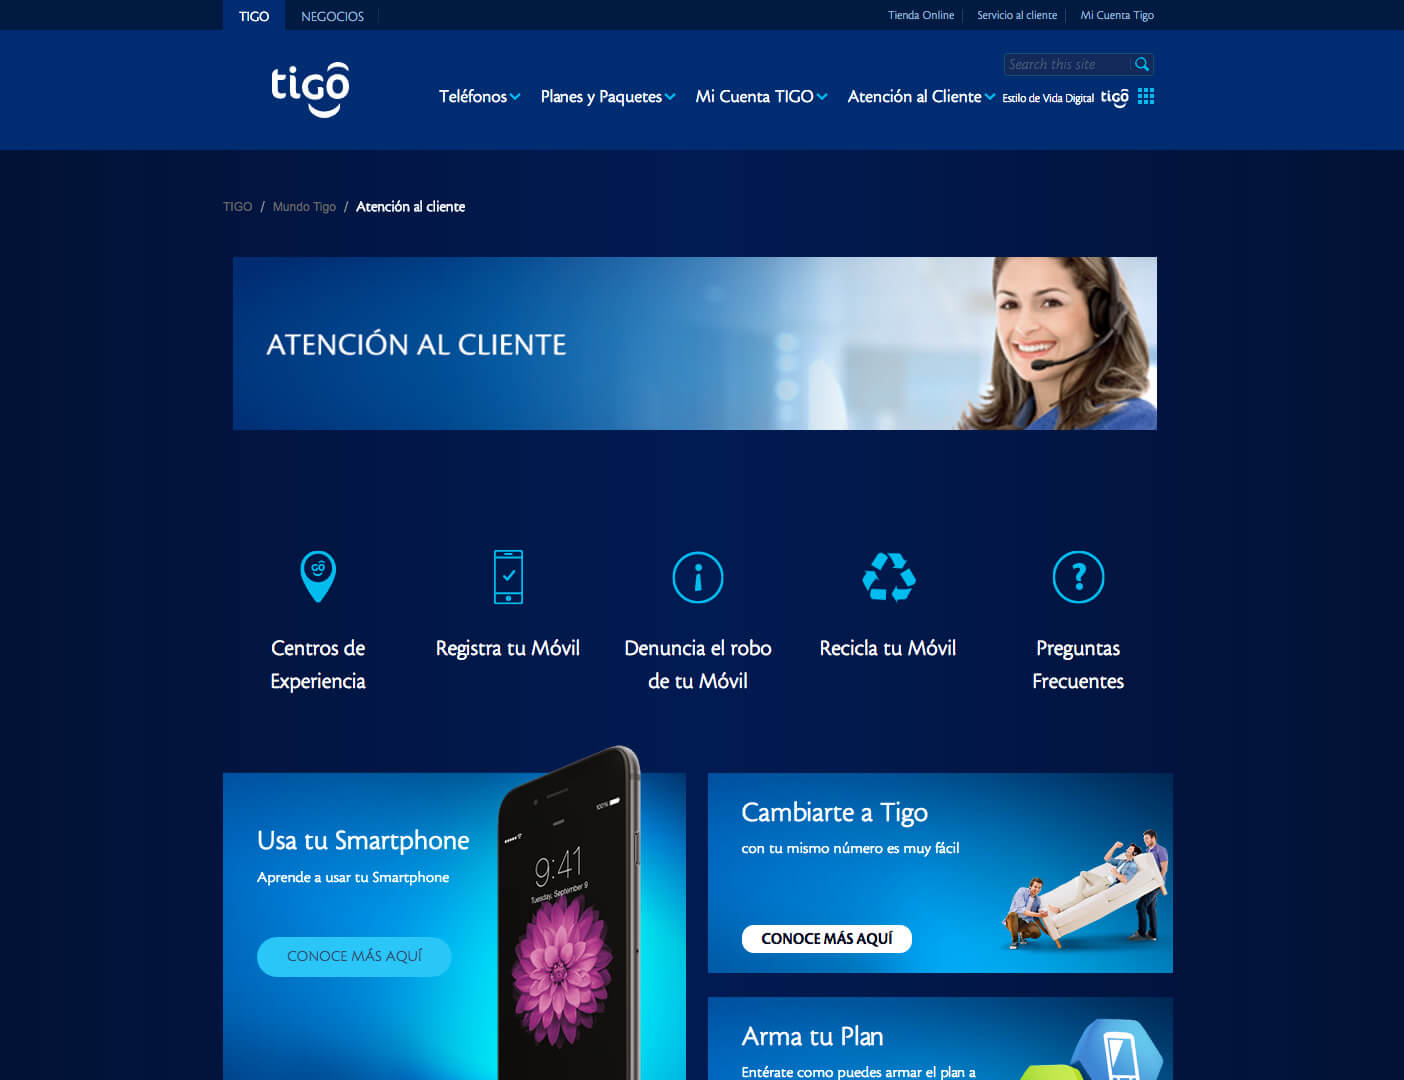 Tigo Customerservice